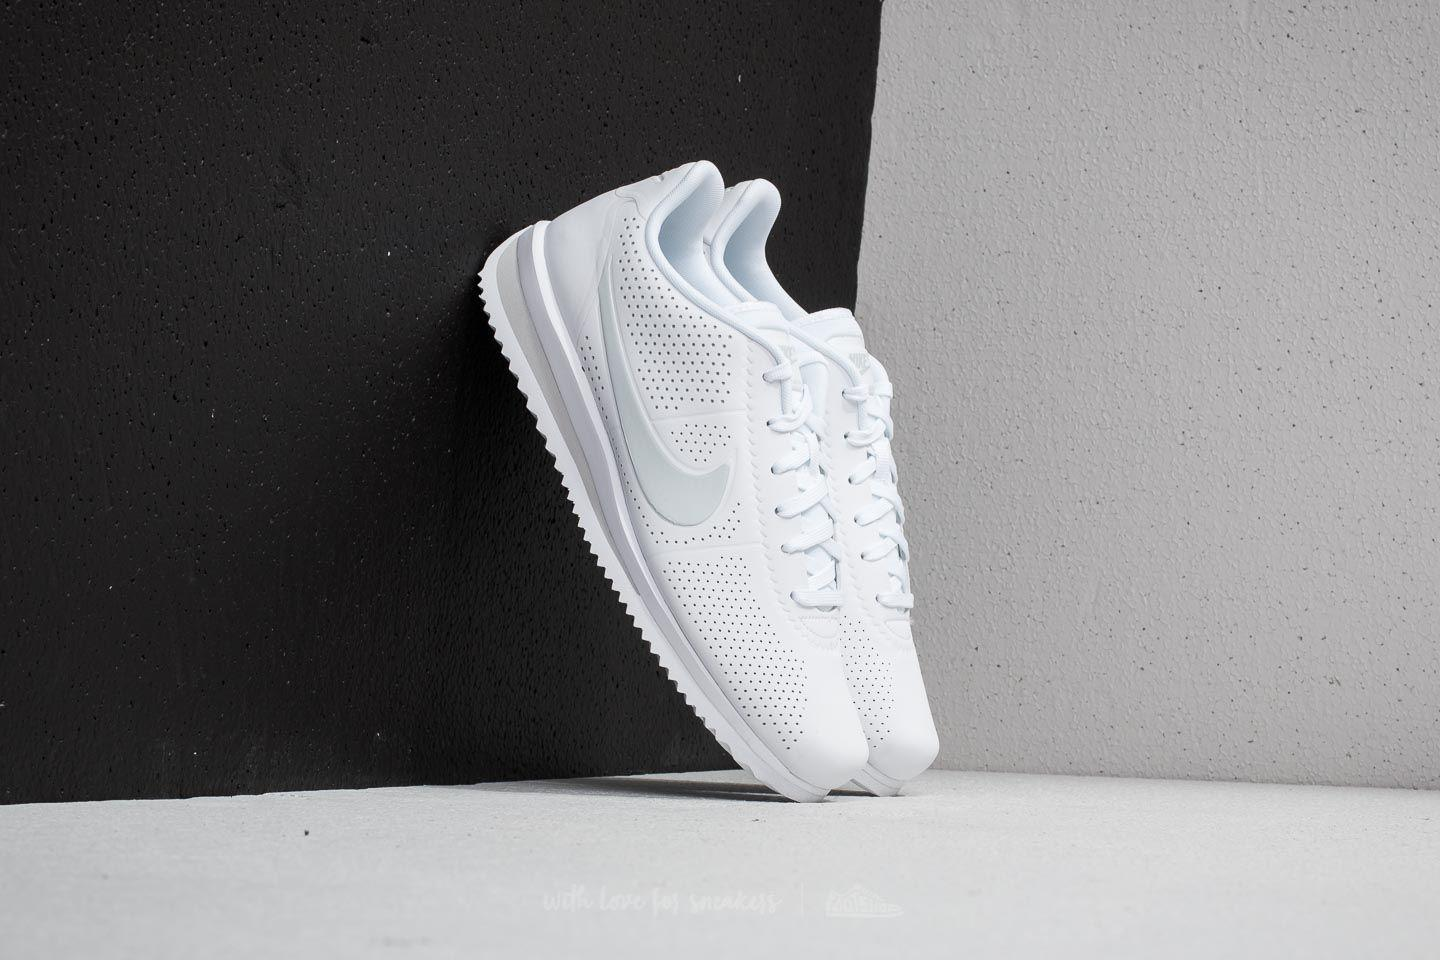 new product 8b5b3 8a8f1 Nike Cortez Ultra Moire White/ Pure Platinum in White for Men - Lyst